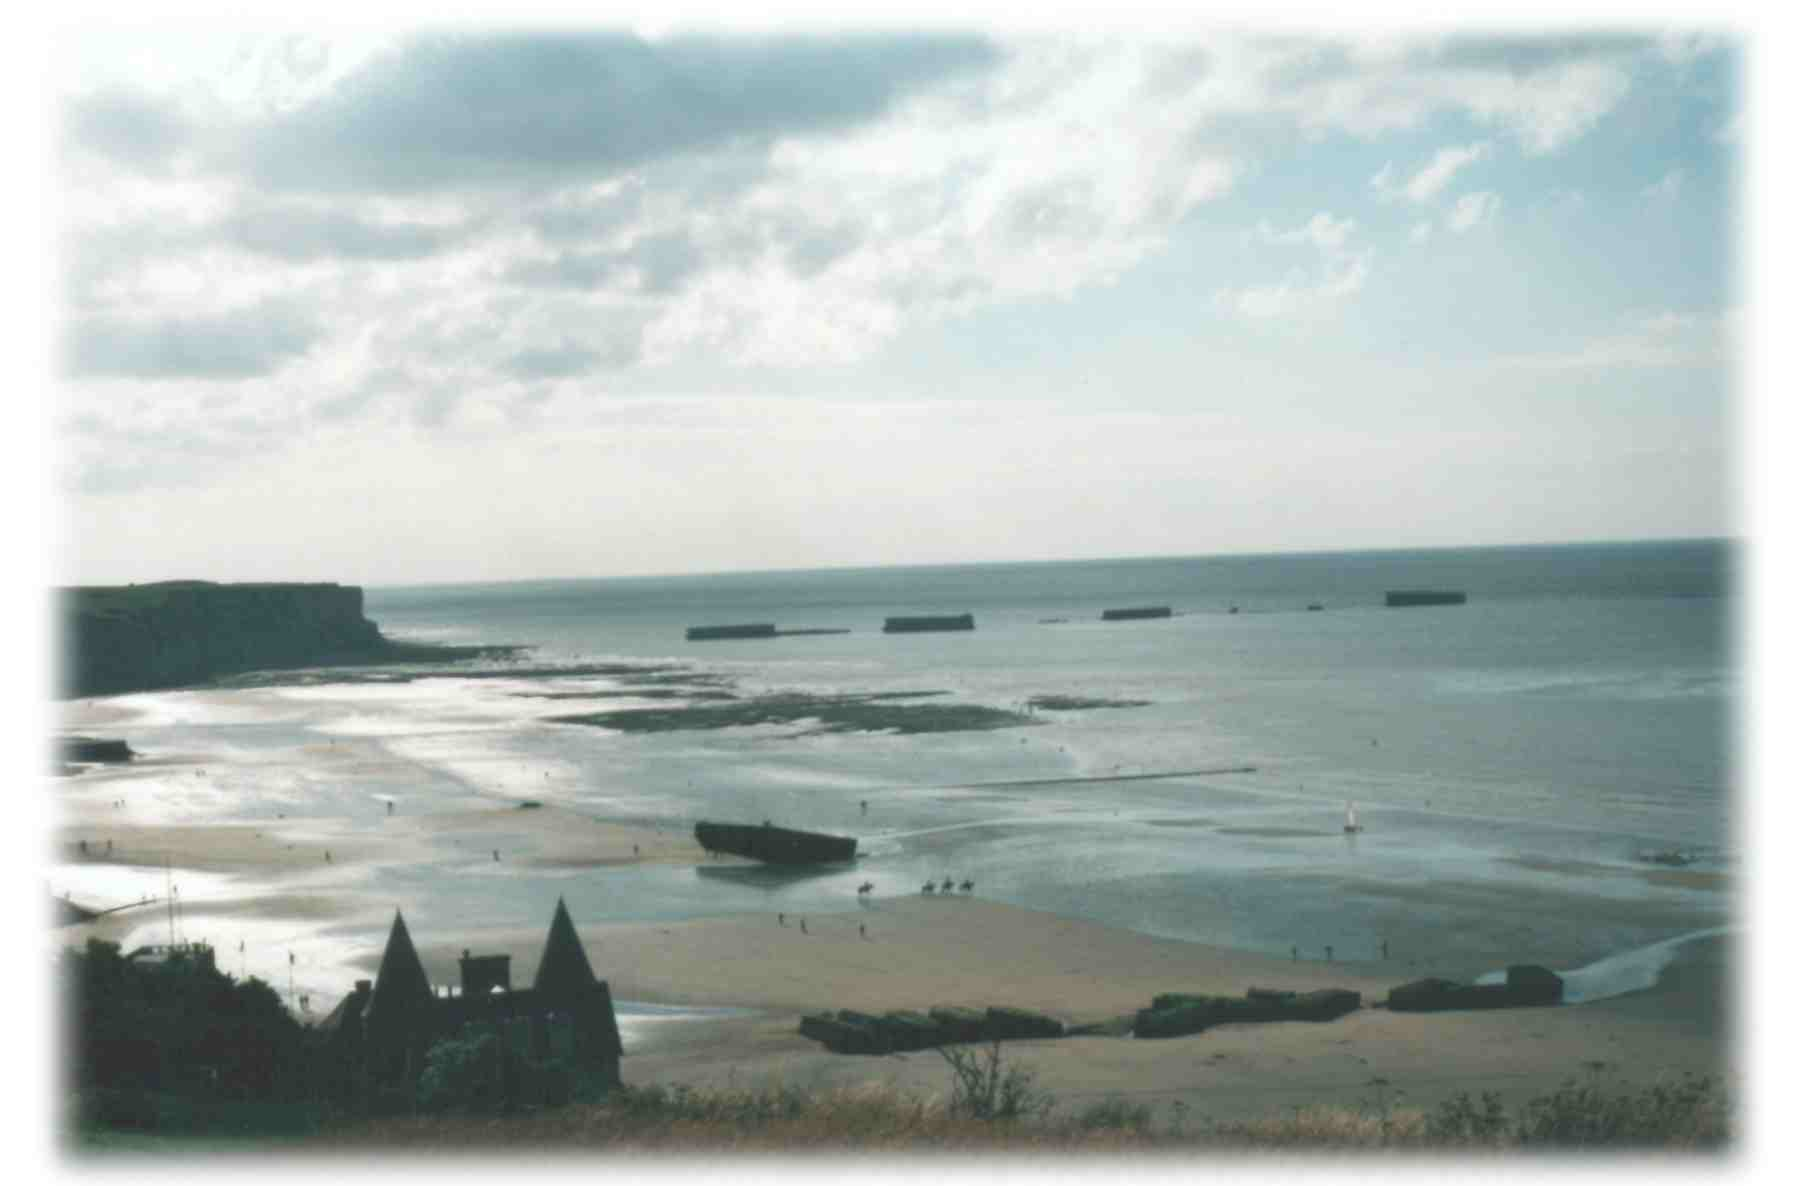 Arromanches and parts of the Mulberry Harbour